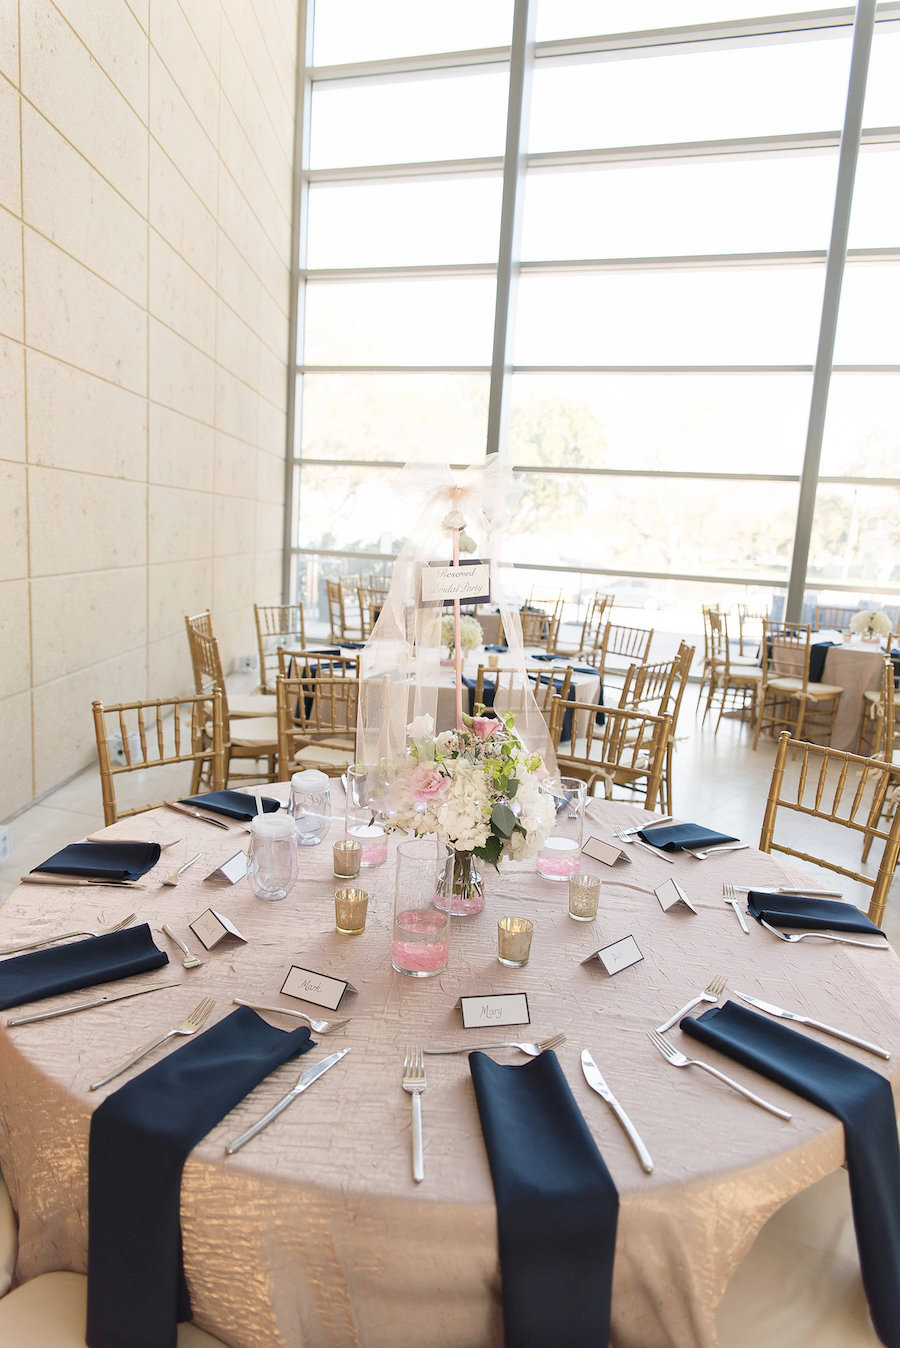 Modern Elegant Reception Table Decor with White Floral Centerpieces and Greenery, Blush Linens and Navy Blue Napkins, Silver Mercury Votive Candle Holders and Gold Chiavari Chairs